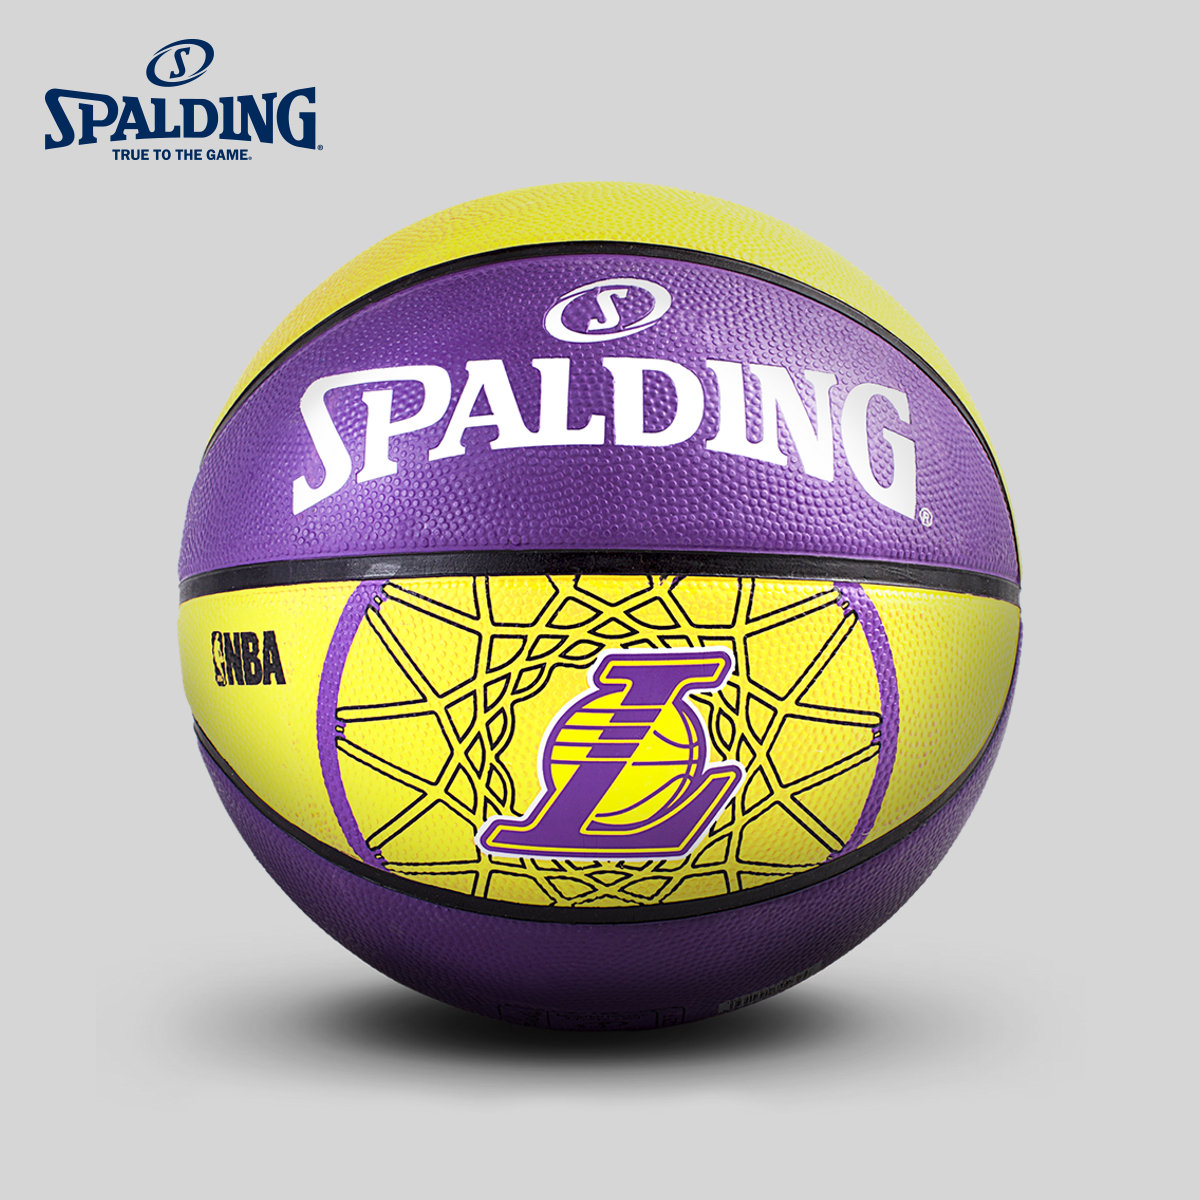 Nba los angeles lakers team logo rubber basketball spalding official flagship store 83-156Y